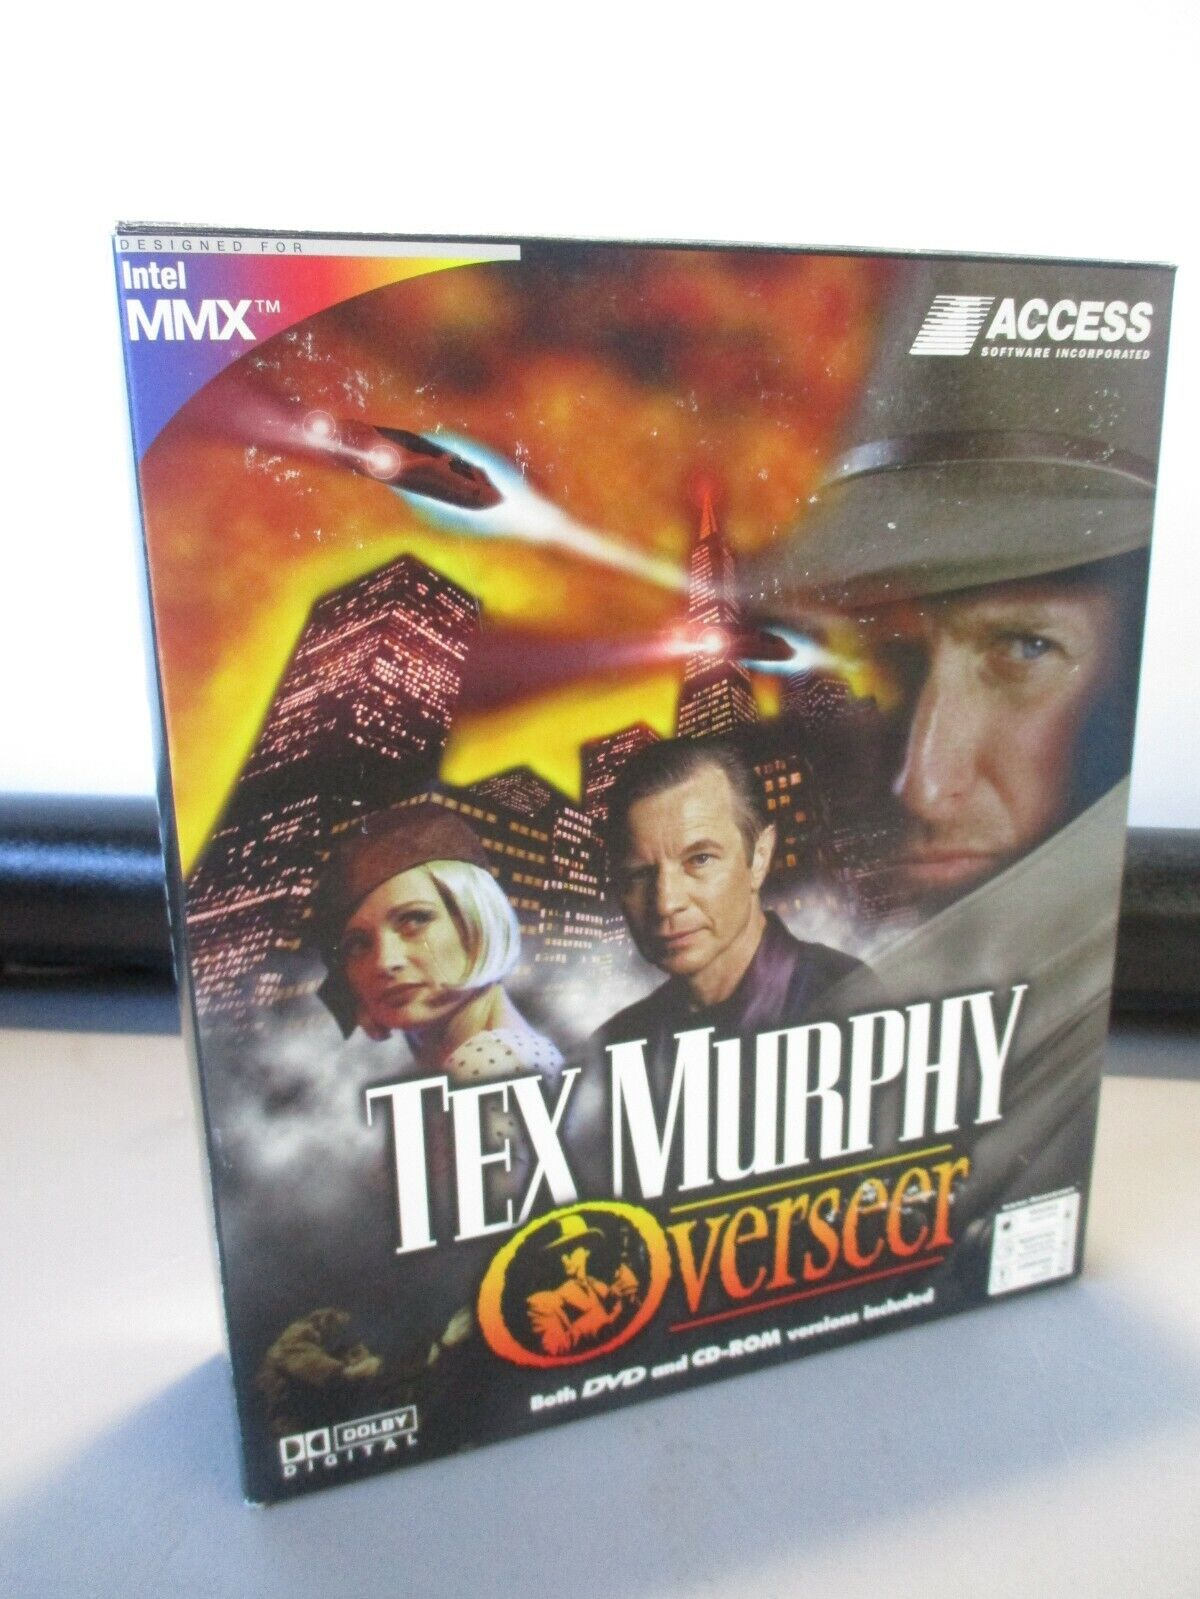 Computer Games - VINTAGE PC COMPUTER GAME CD ROM ACCESS SOFTWARE TEX MURRAY GAME IN BOX